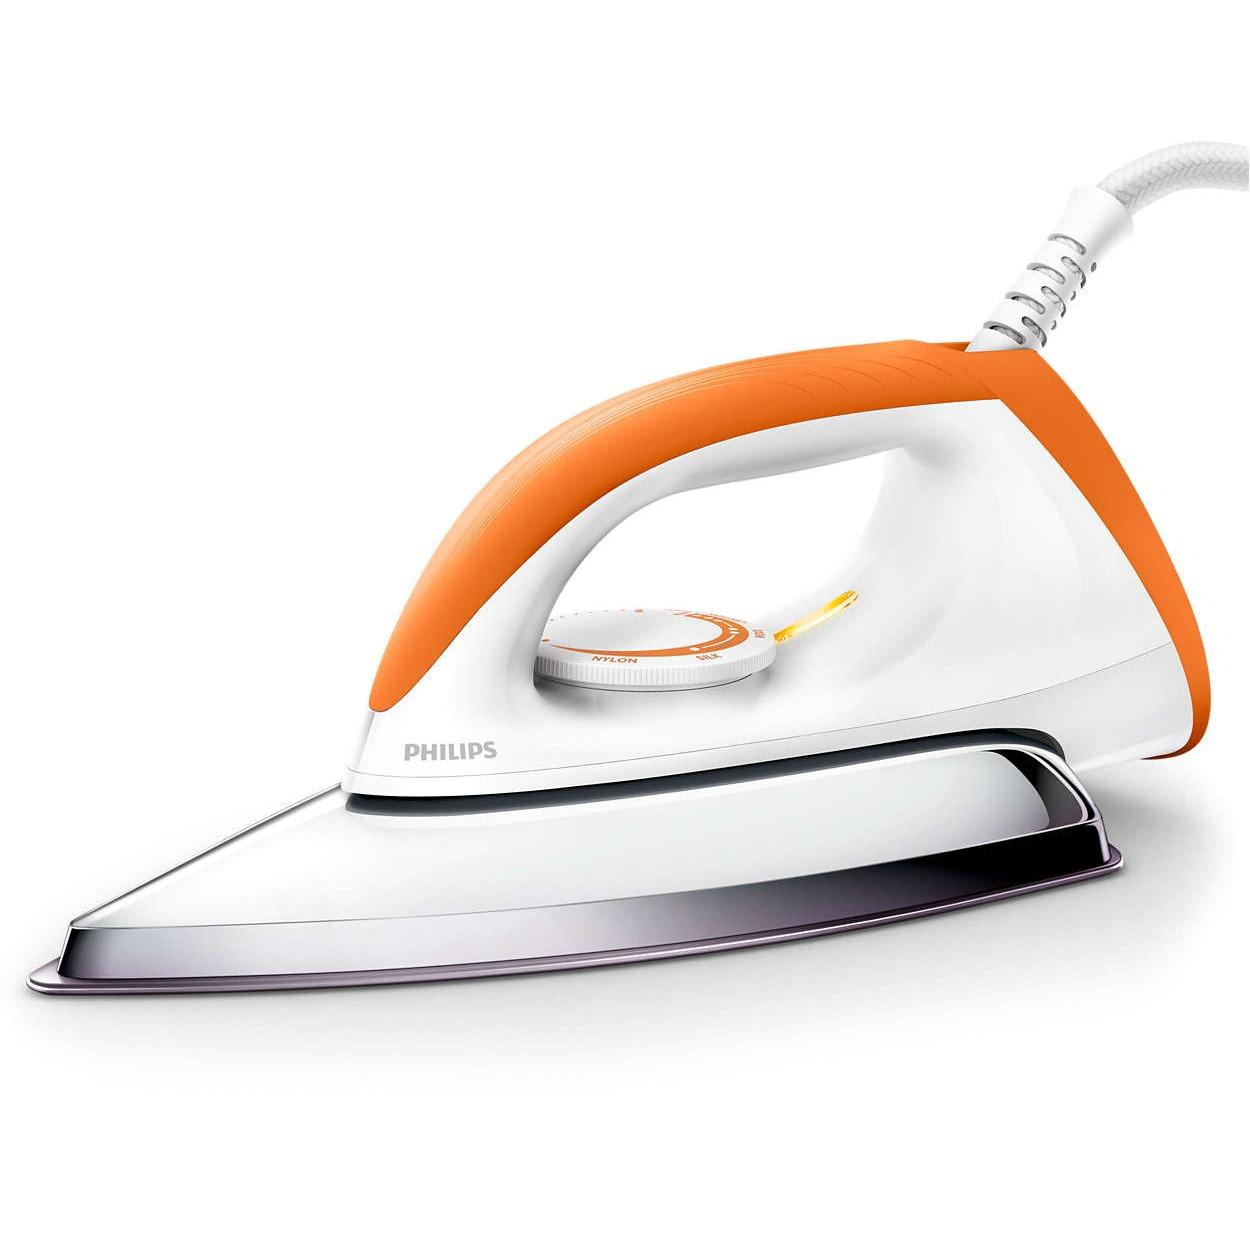 Philips Setrika 350 Watt HD-1173 - Orange